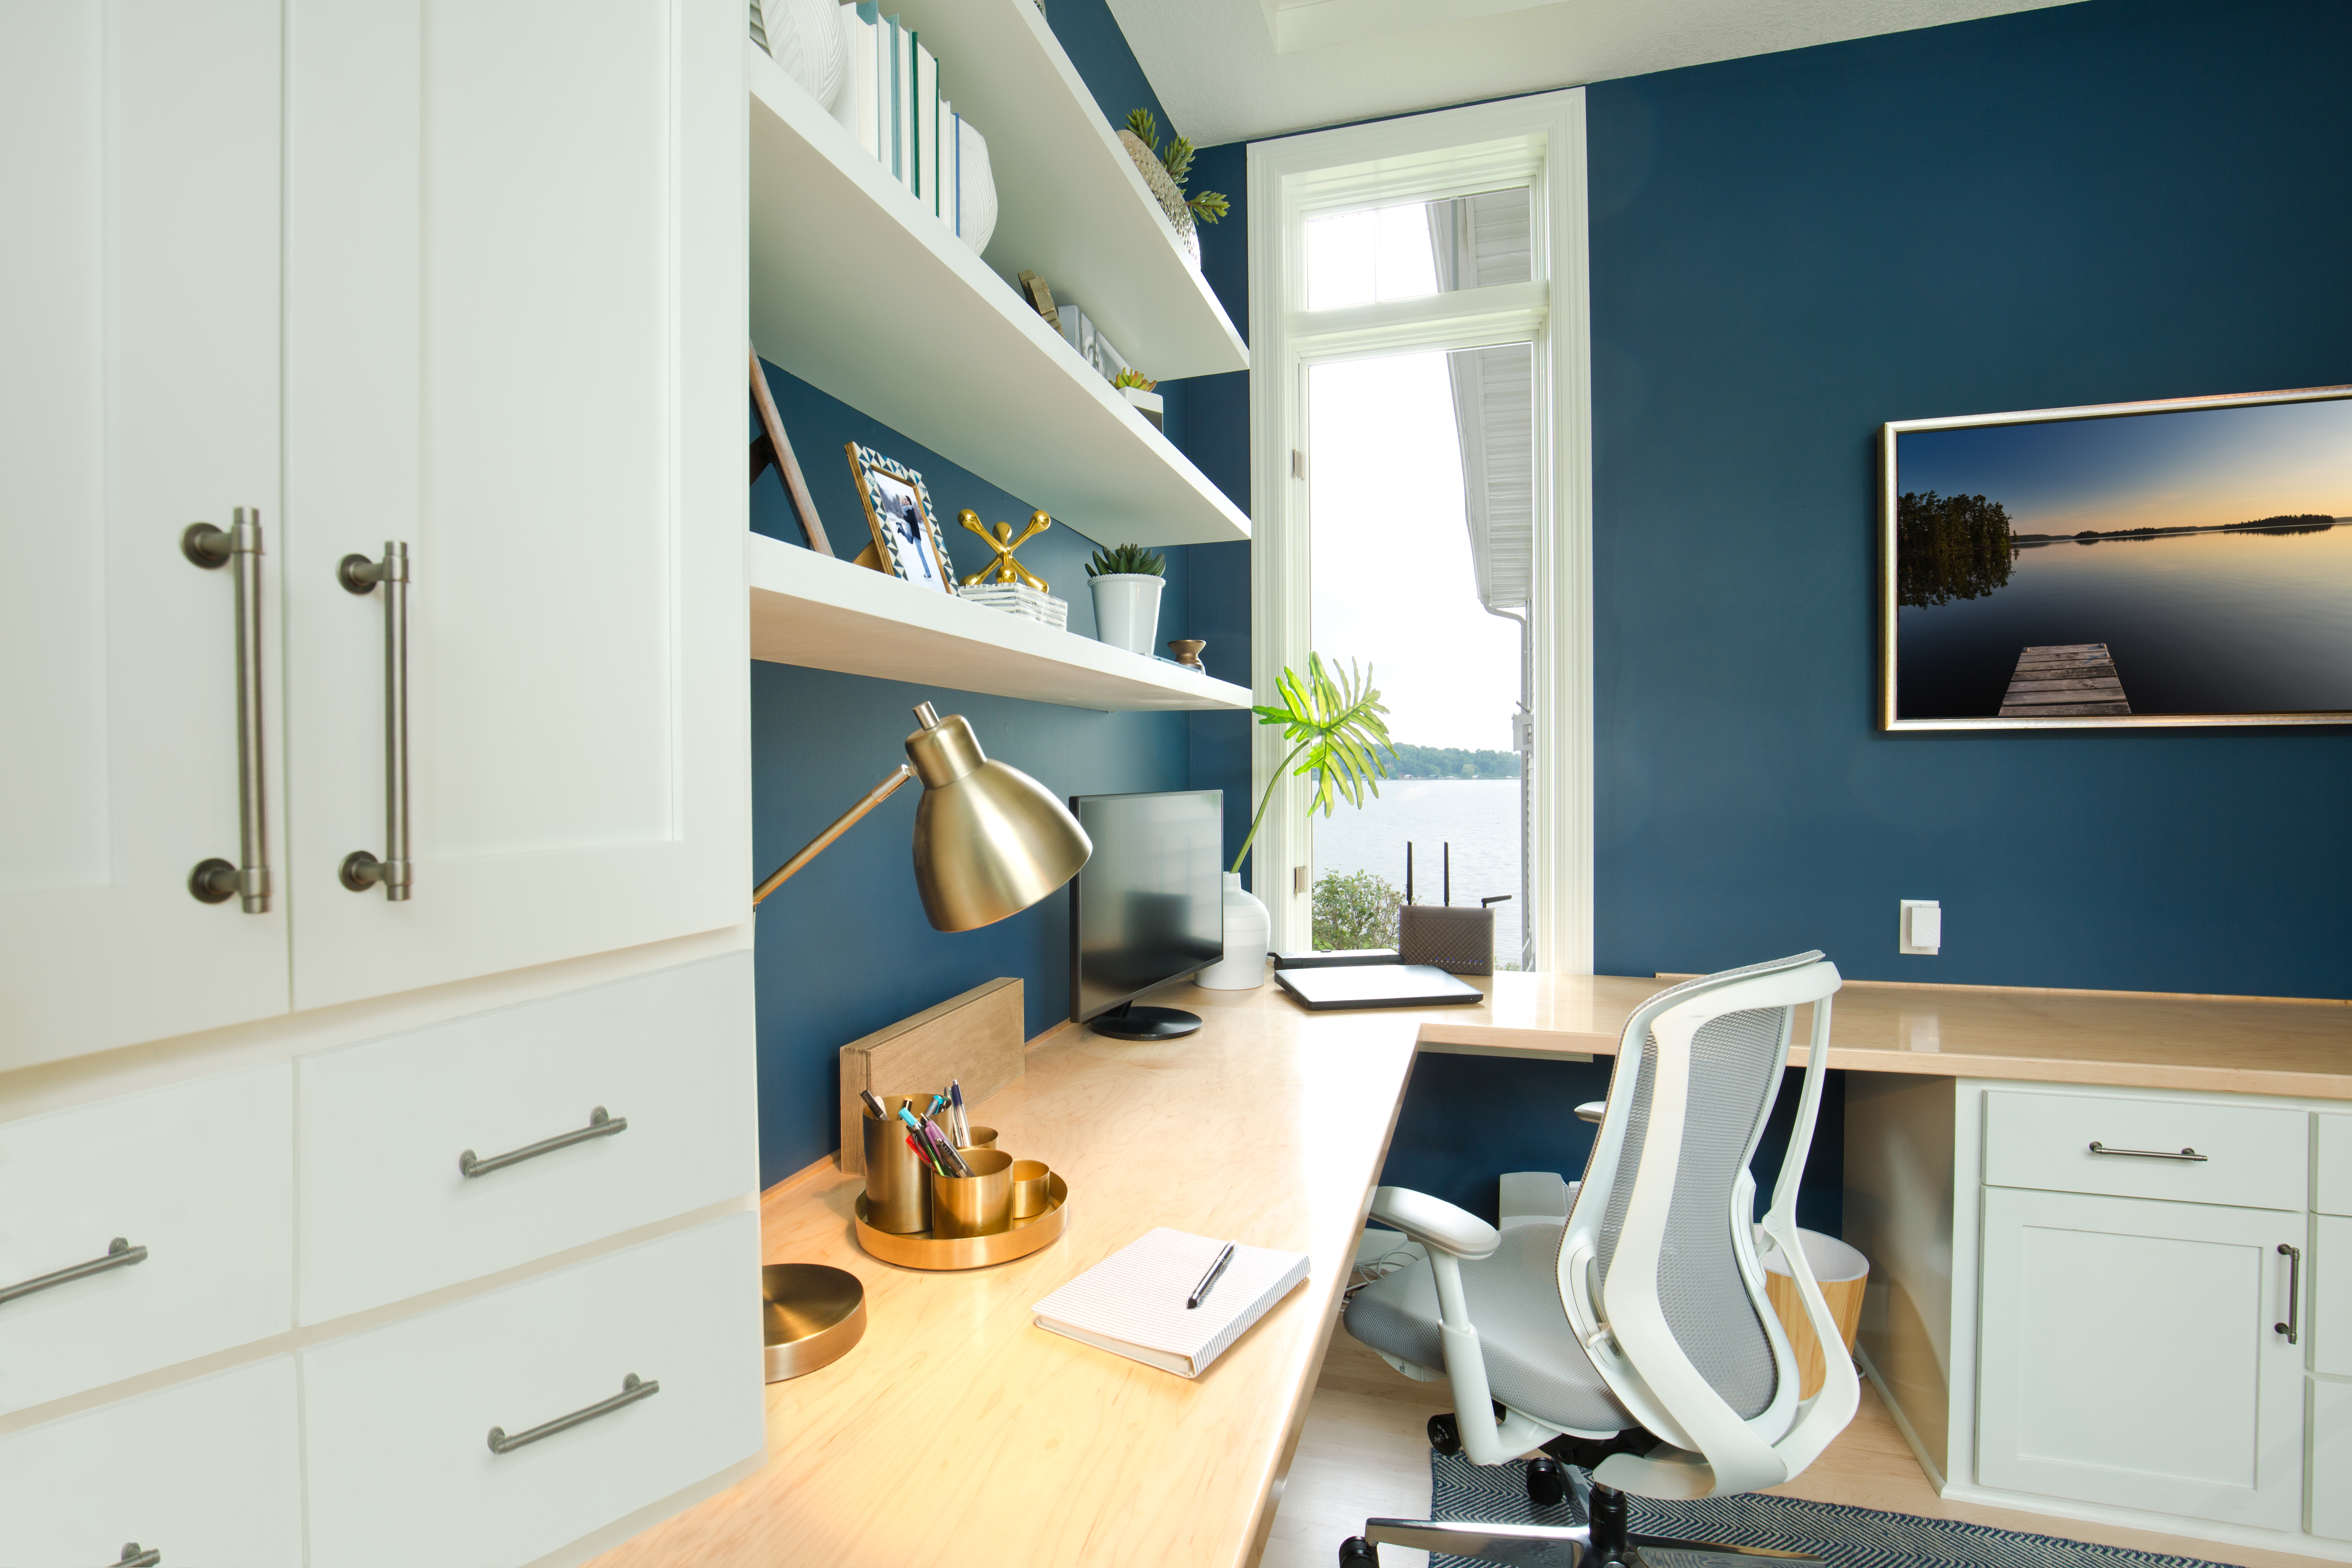 CONESTOGA WOOD MAKES LIKING TO WORK AT HOME…LOVING TO WORK AT HOME